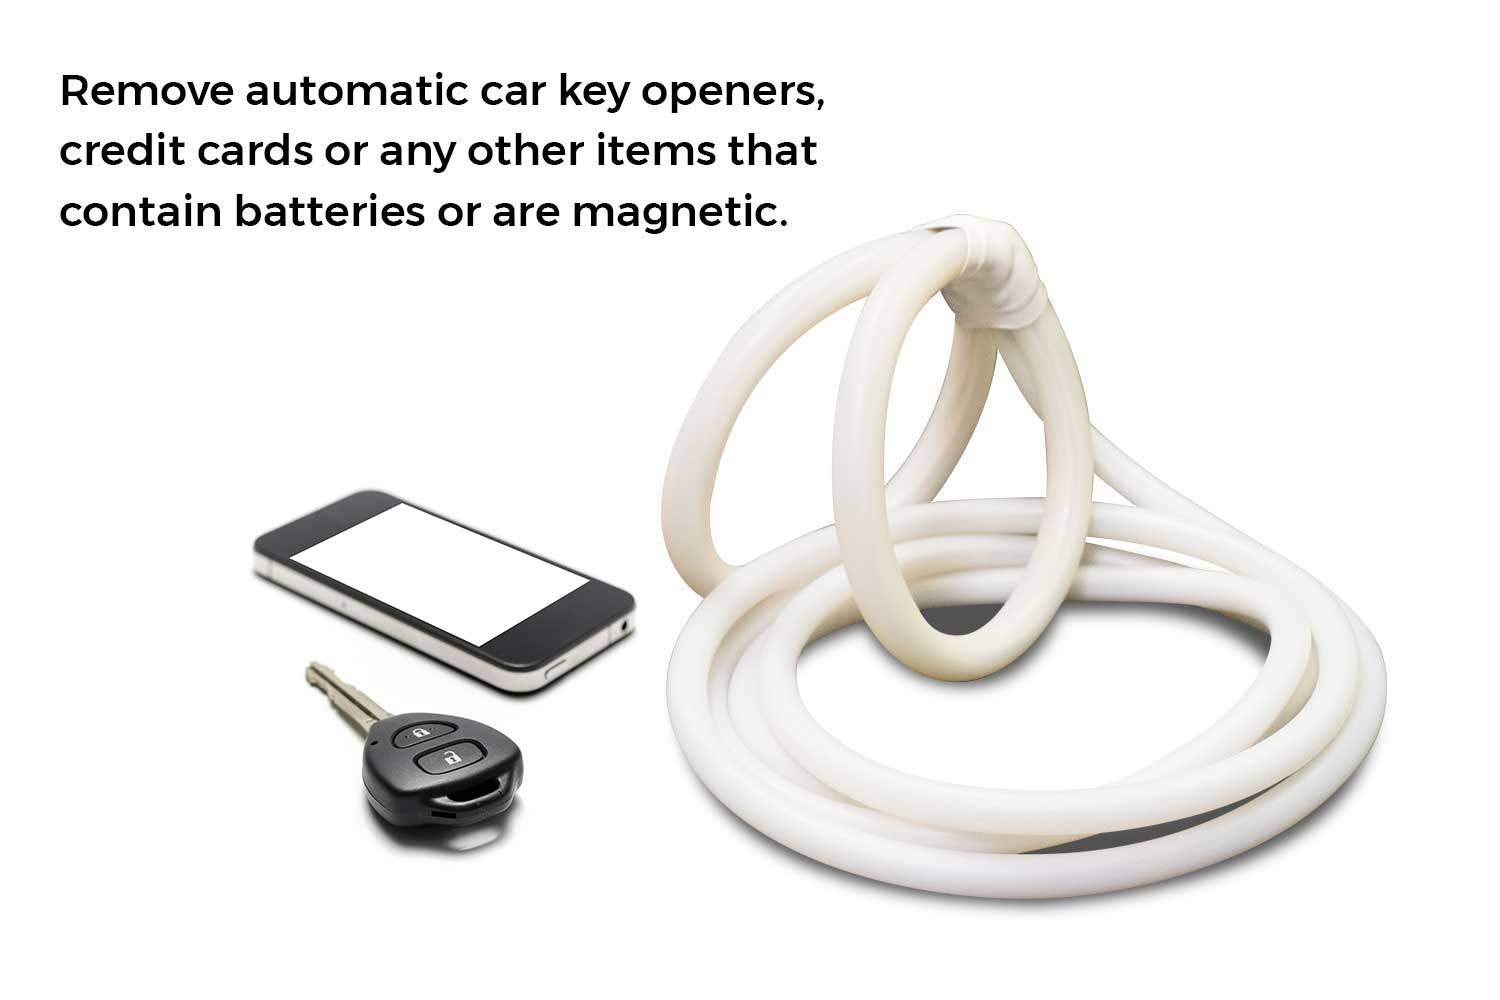 Remove automatic car key openers, credit cards or any other items that contain batteries or are magnetic.